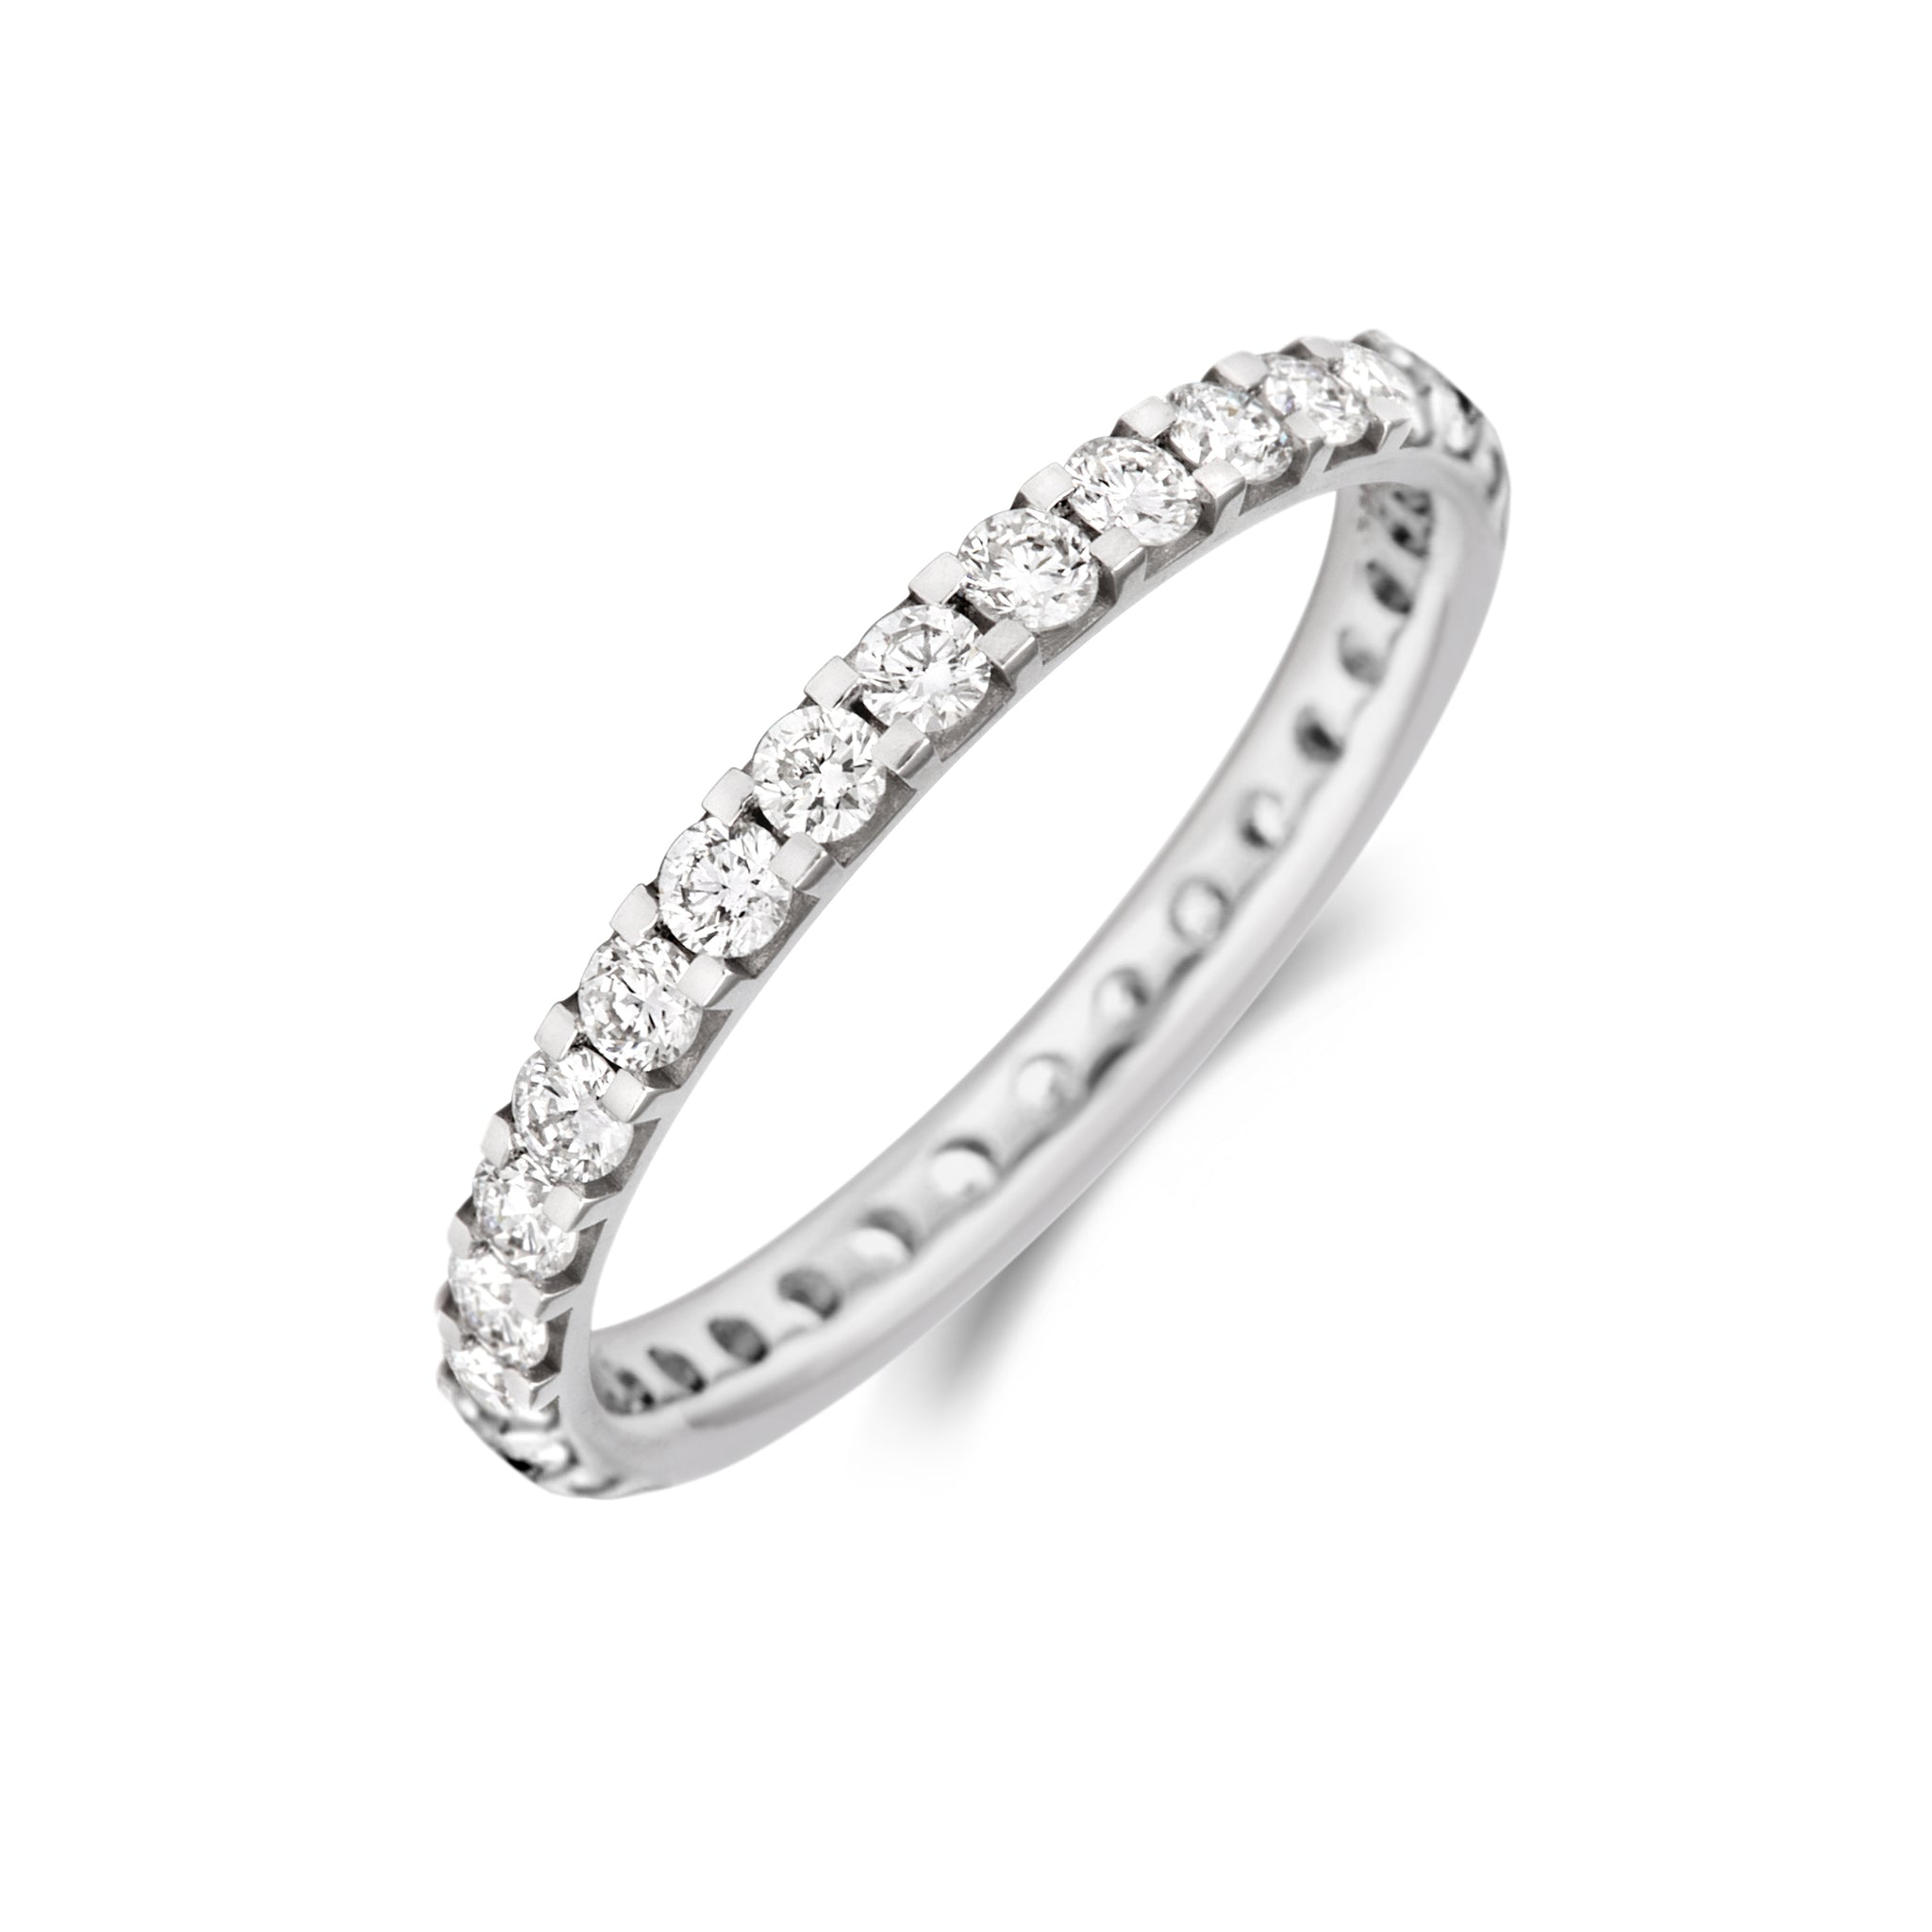 Claw Set Diamond Full Set Eternity/Wedding Ring - (18ct) Yellow, White or Rose Gold or Platinum